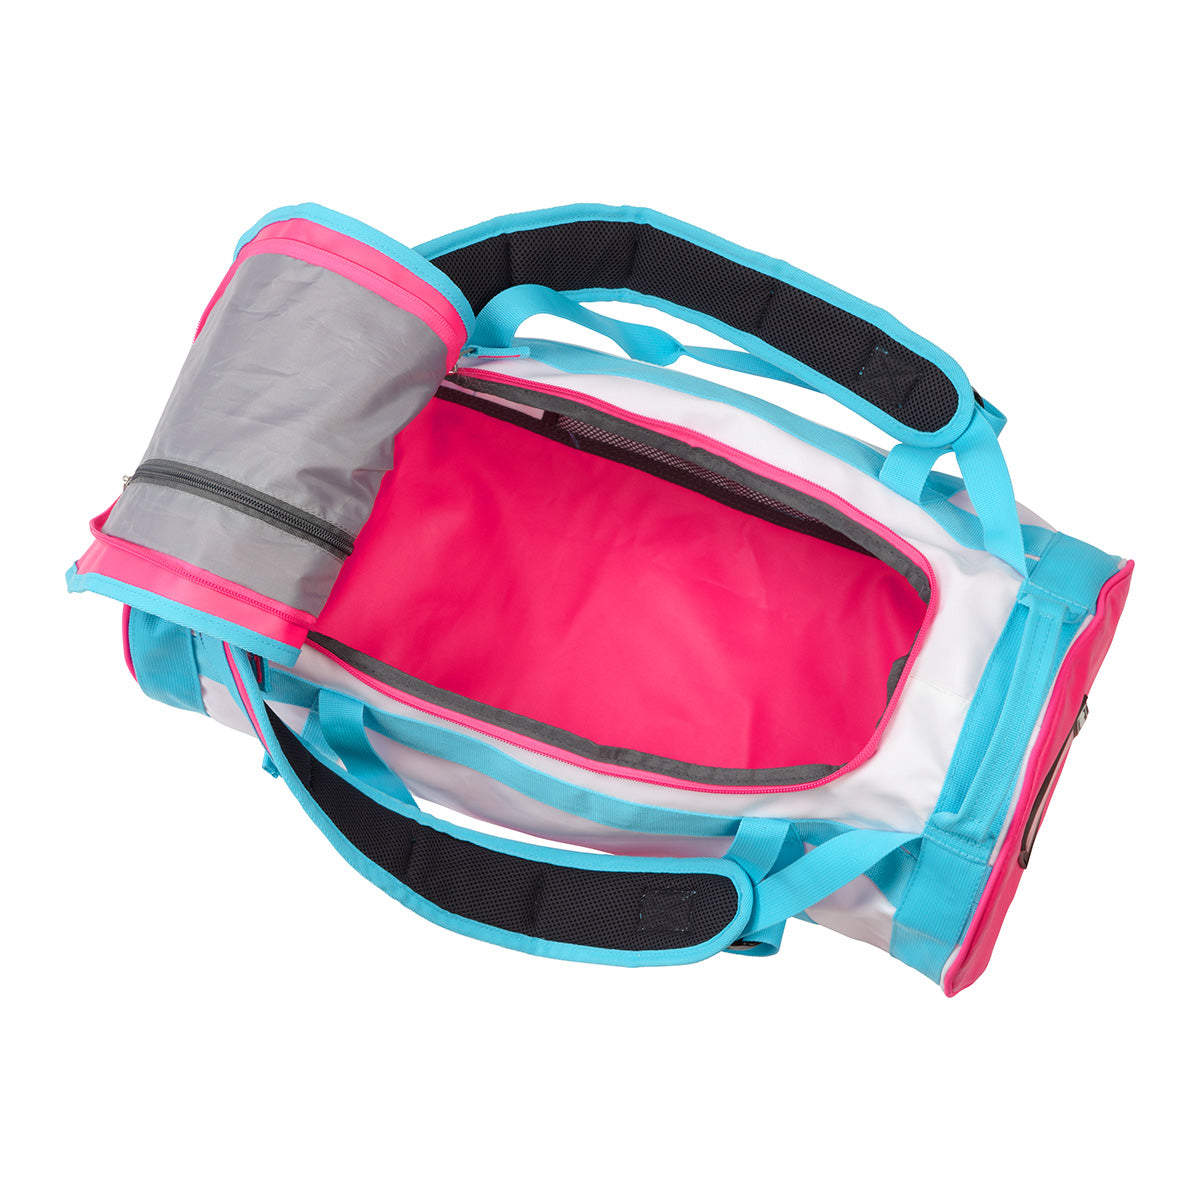 Stow 30L Packaway Duffle - White/Sky/Neon image 4